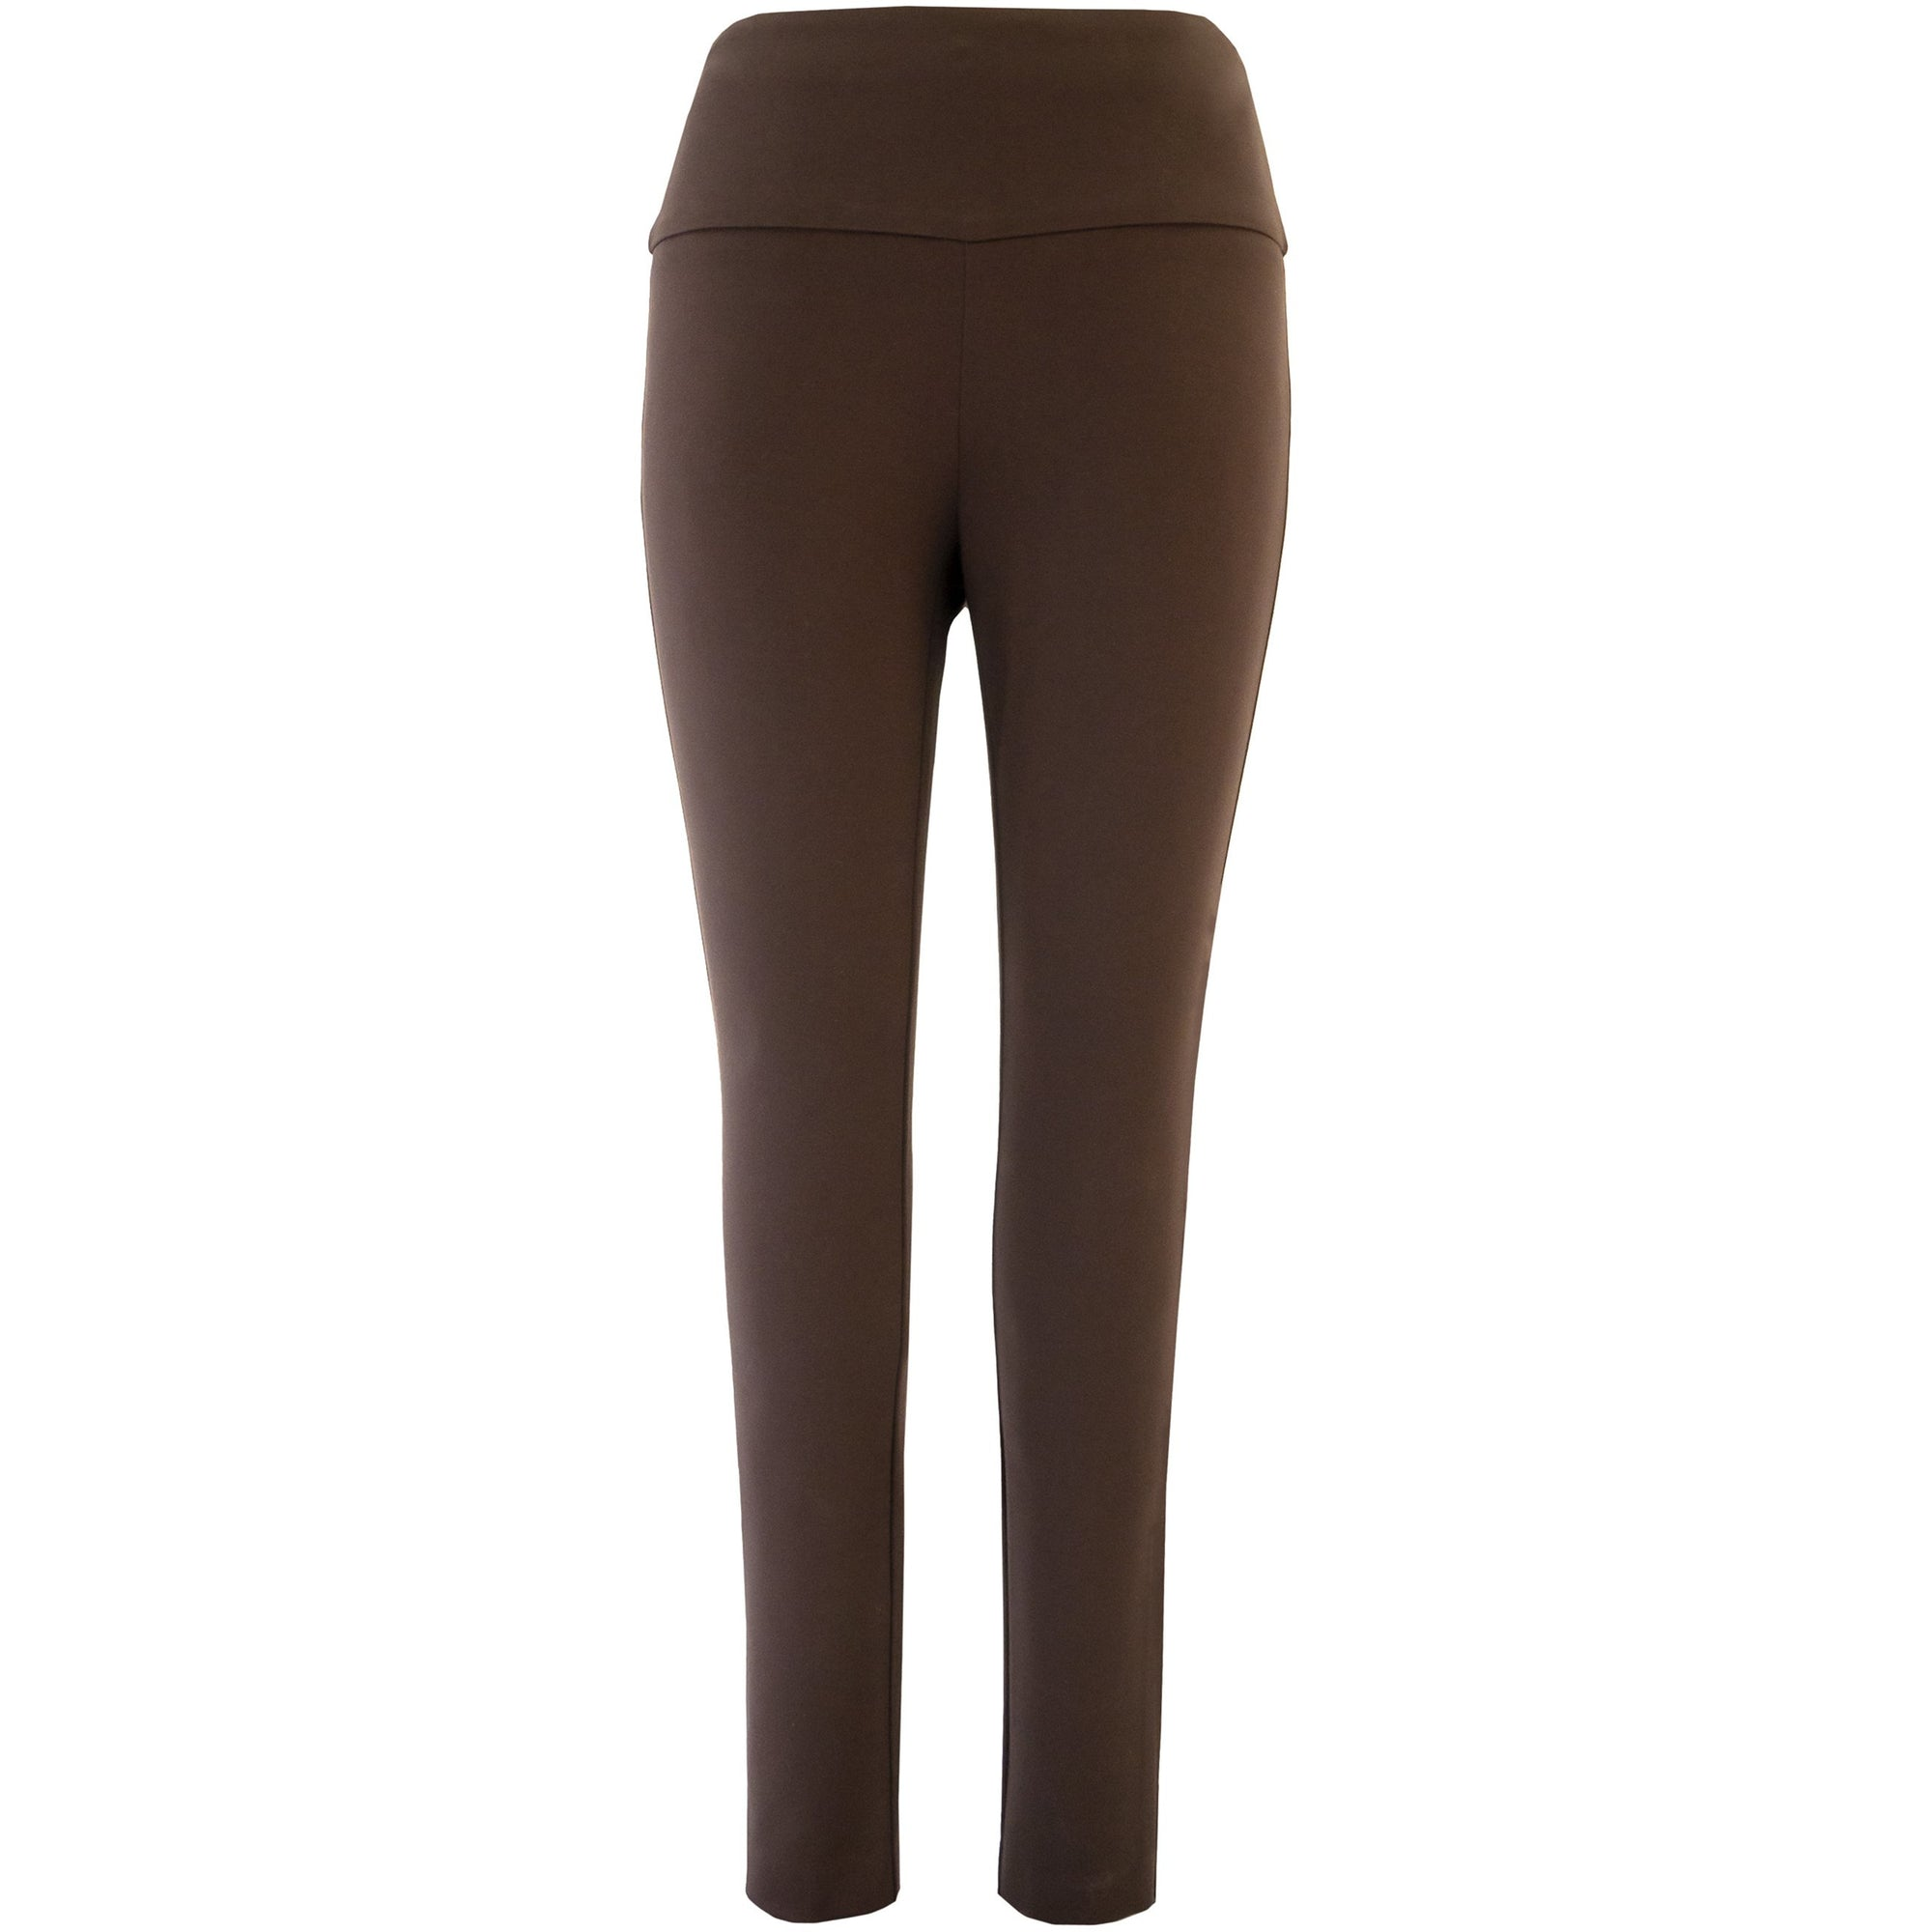 Up! Pant Ponte Illusion Pant in Expresso